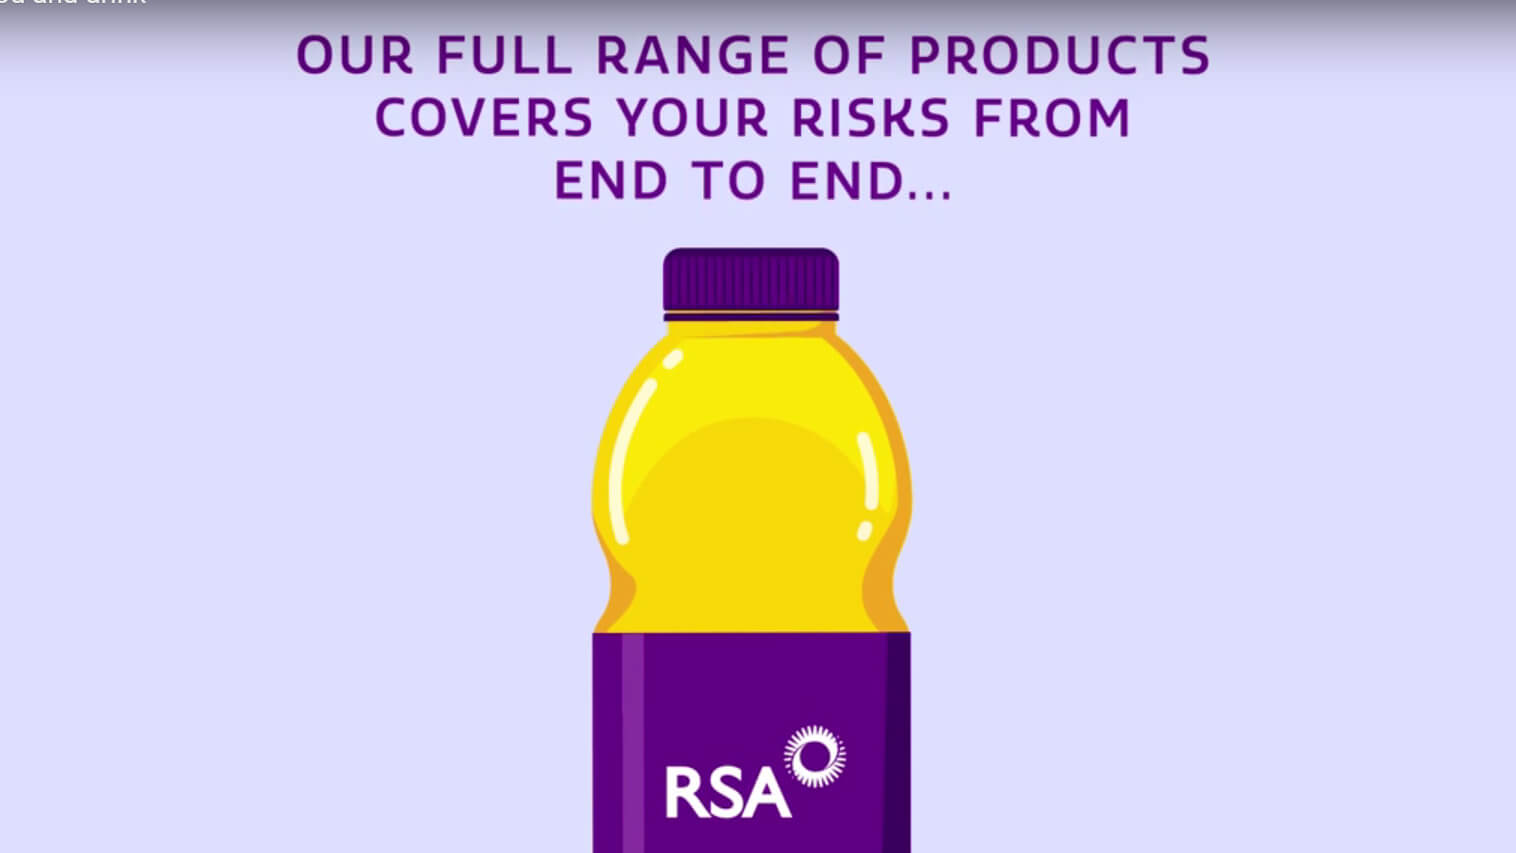 Still from our Food and Drink commercial insurance product film, showing a cartoon drink bottle with an RSA label.